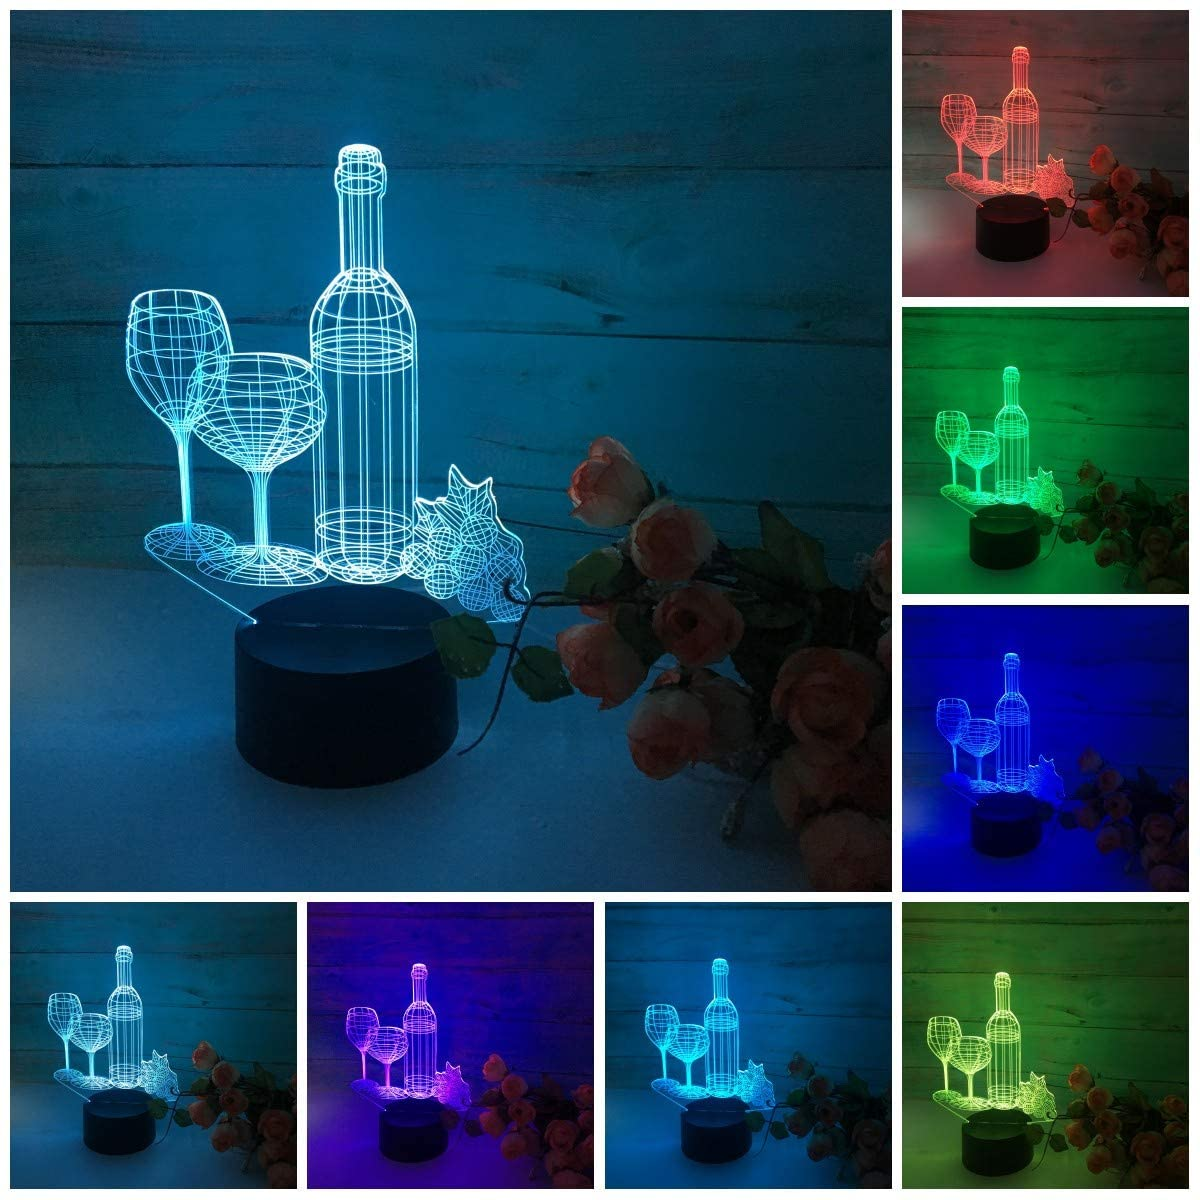 3D Night Light Wine Cup 3D Illusion Lamp Night Light for Kids 7 Color LED Touch Remote Table Desk Lamps Bedroom Decor LED Light Acrylic Lamp Home Decor Christmas Gift Idea